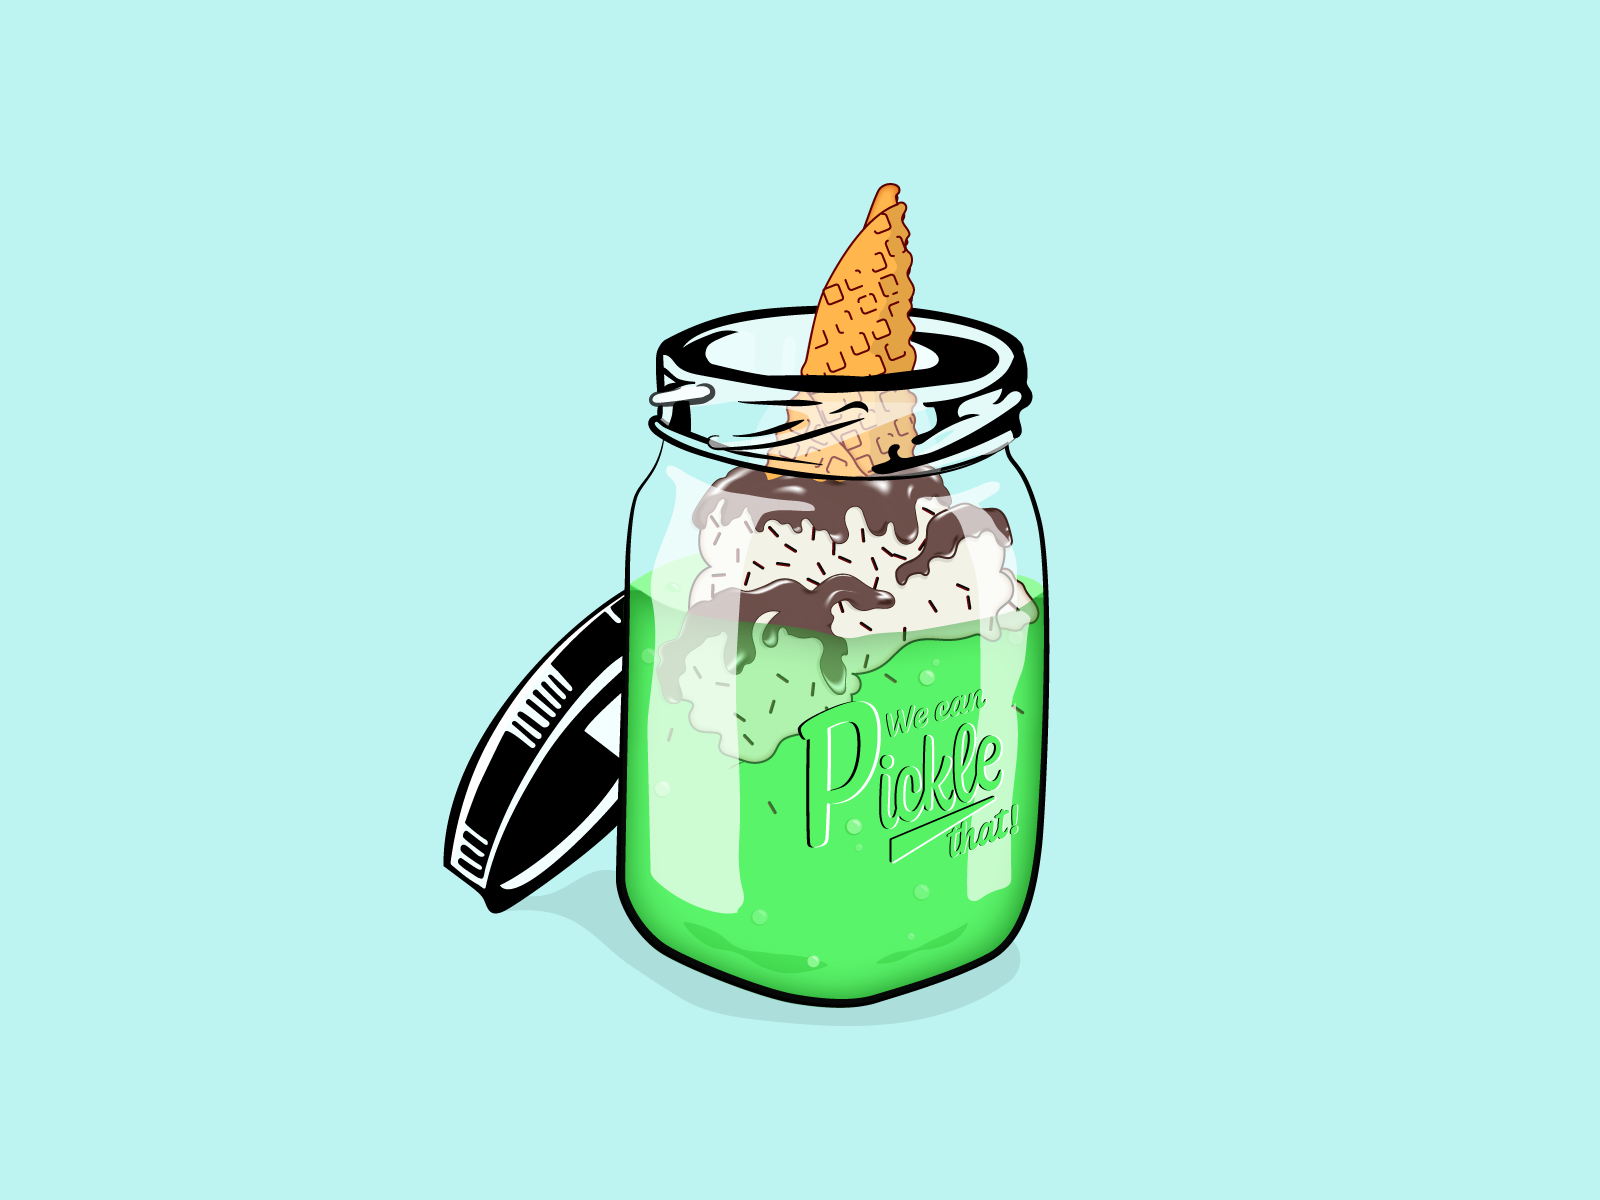 We can pickle that by Jon Rodenhiser on Dribbble.